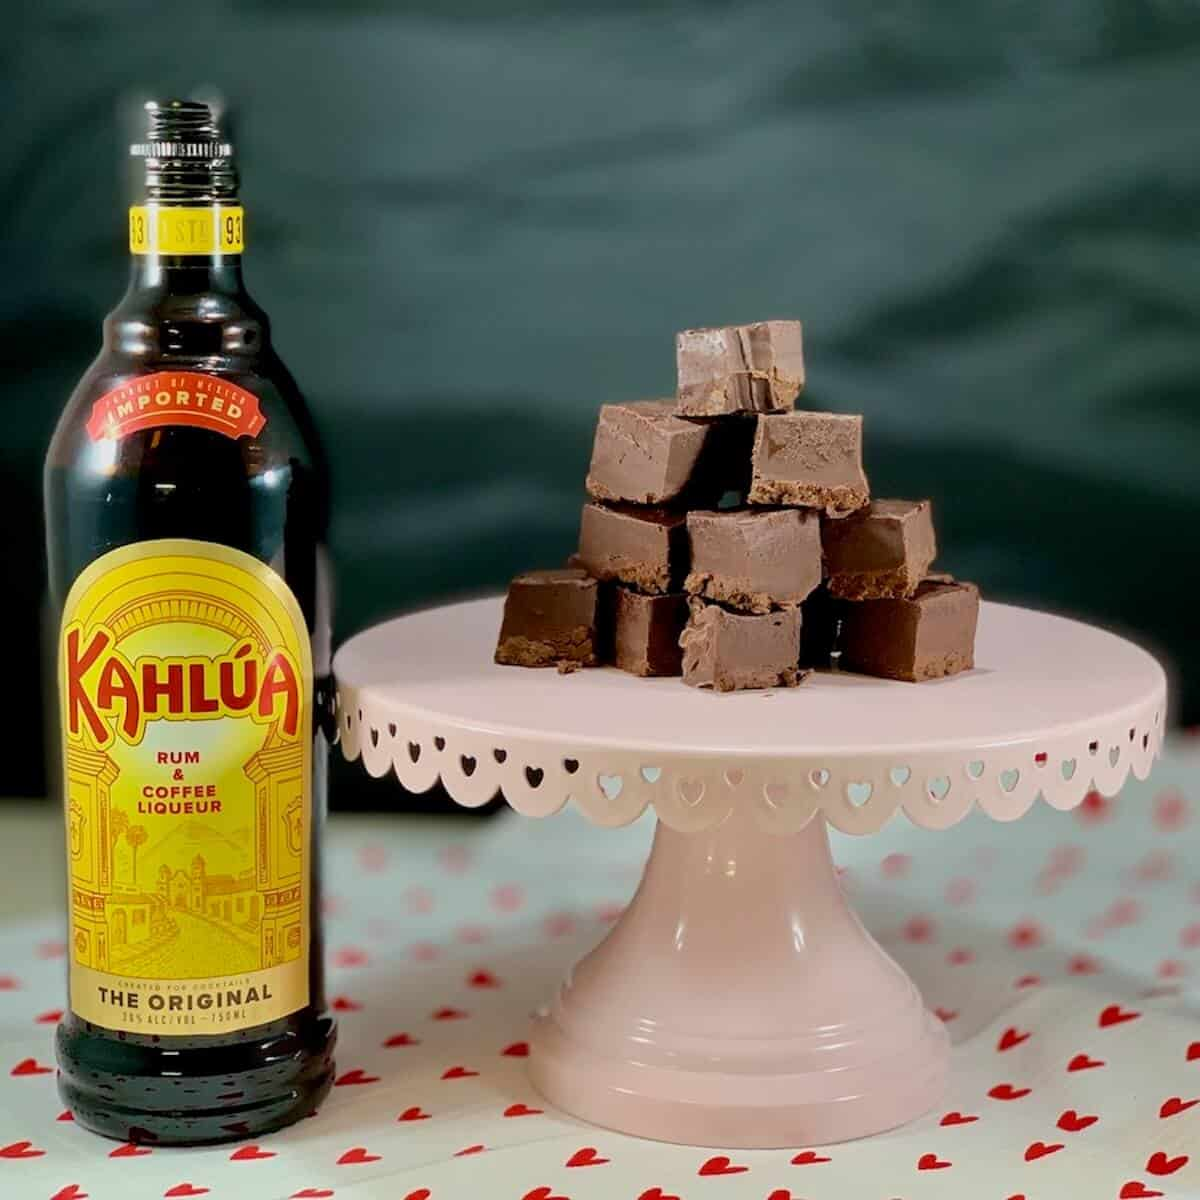 Kahlua Chocolate Fudge stacked on a cakestand with a bottle of Kahlua